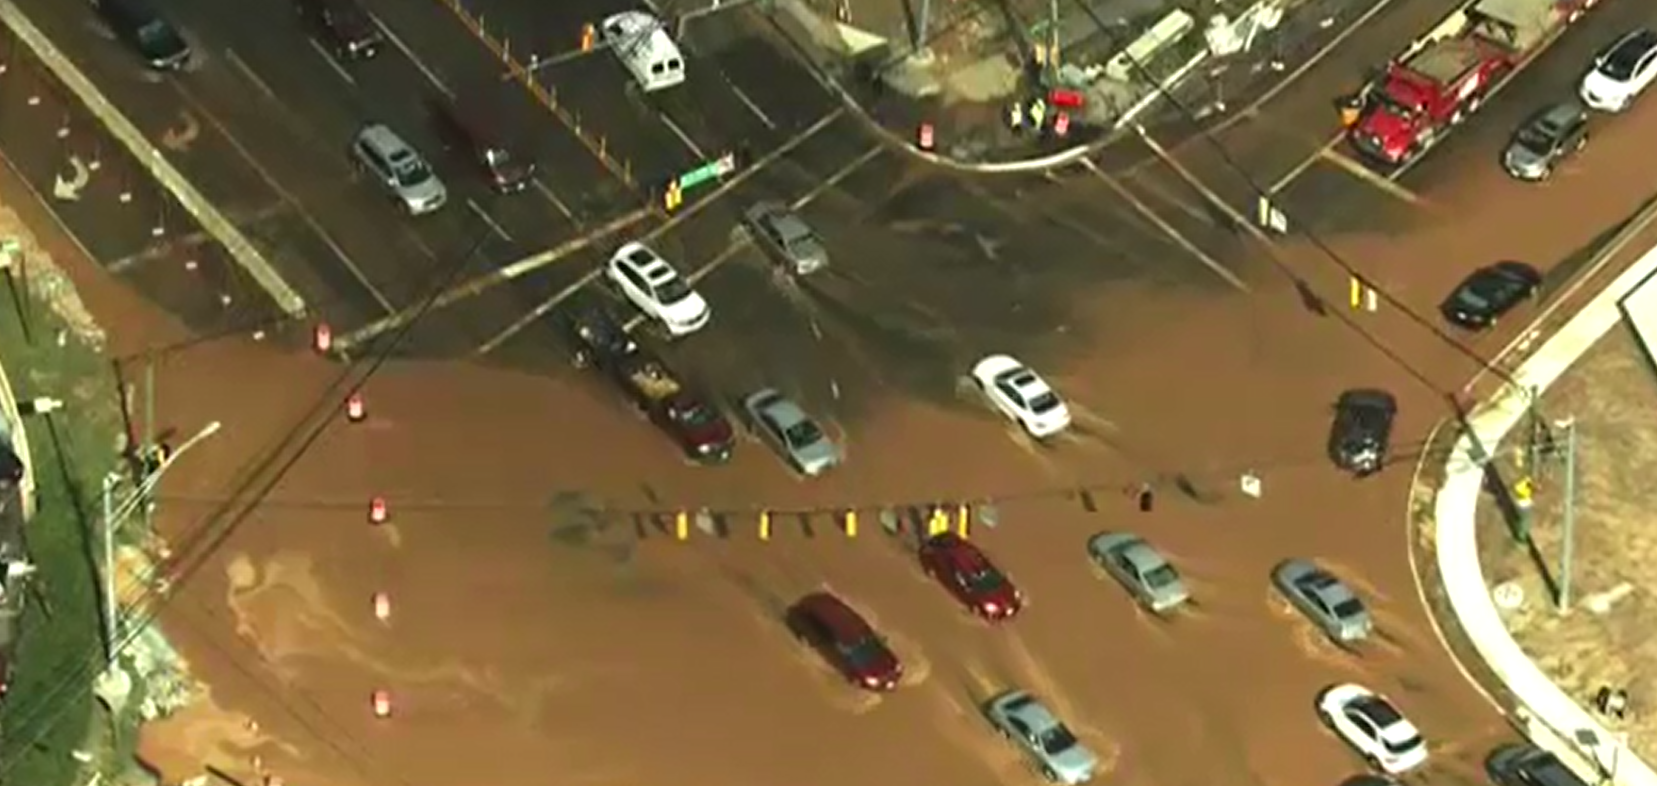 huge water main break in bethesda could mean a messy commute wjla huge water main break in bethesda wjla